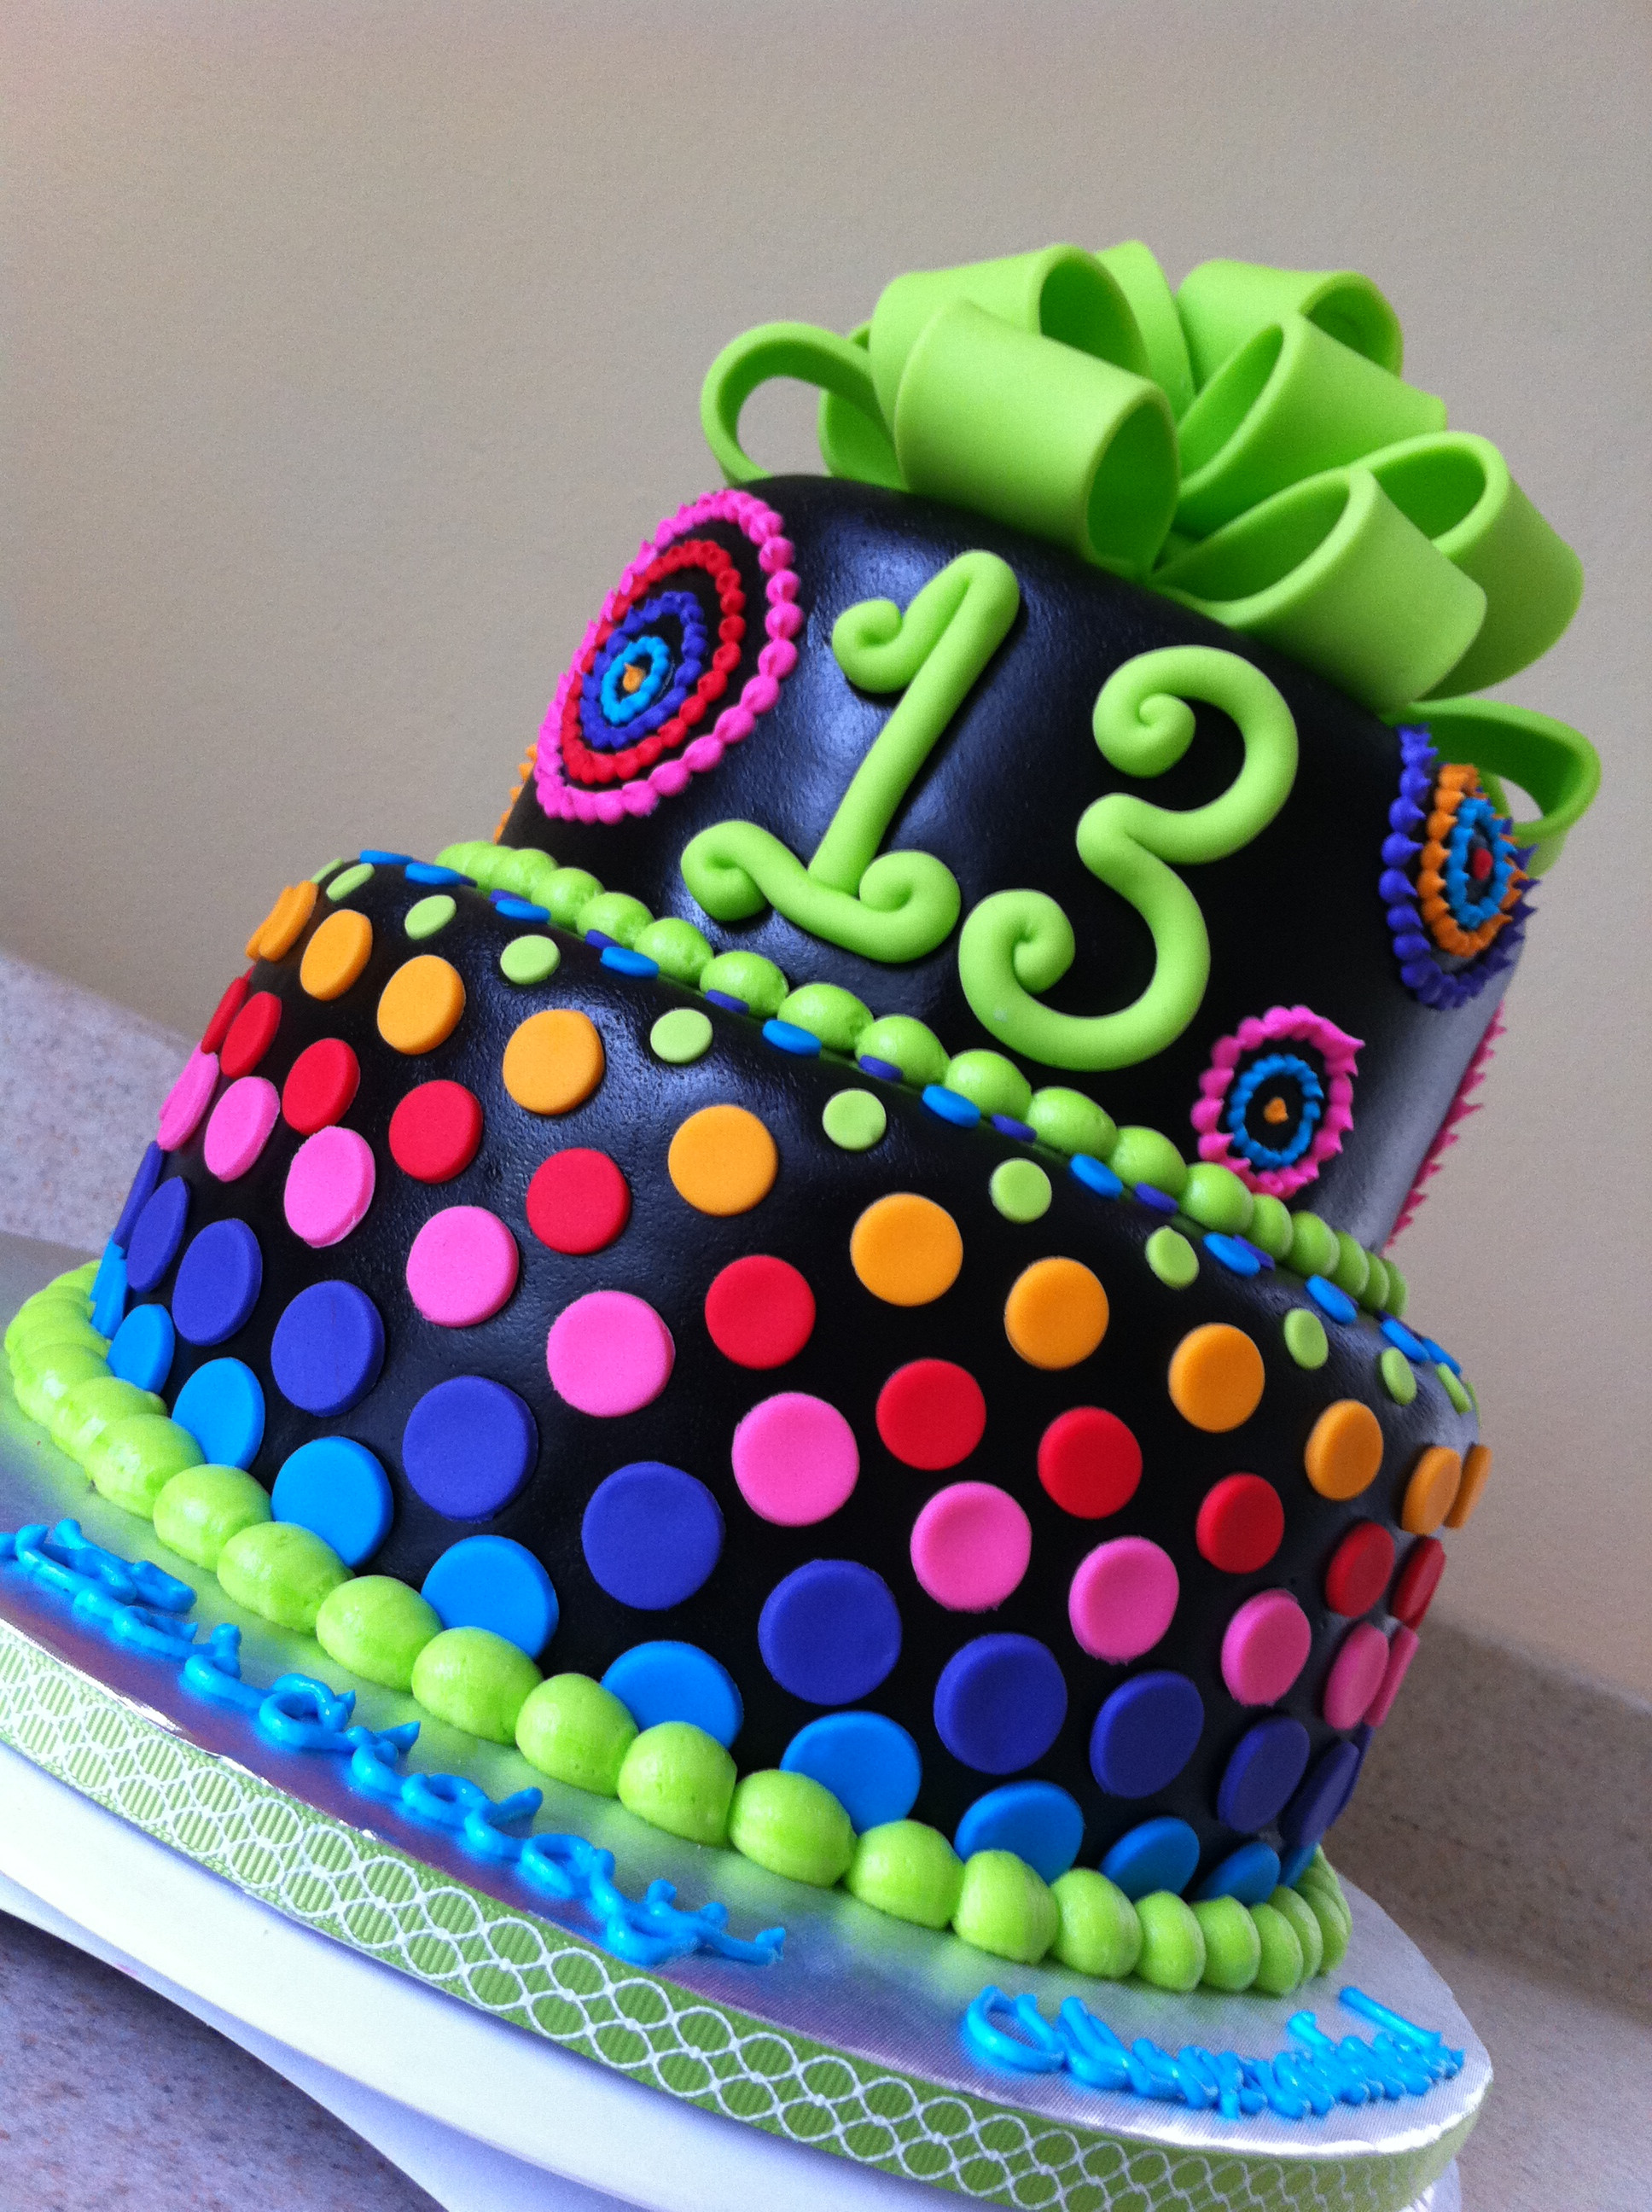 Best ideas about 13 Birthday Cake . Save or Pin Psychadelic rainbow birthday cake Now.